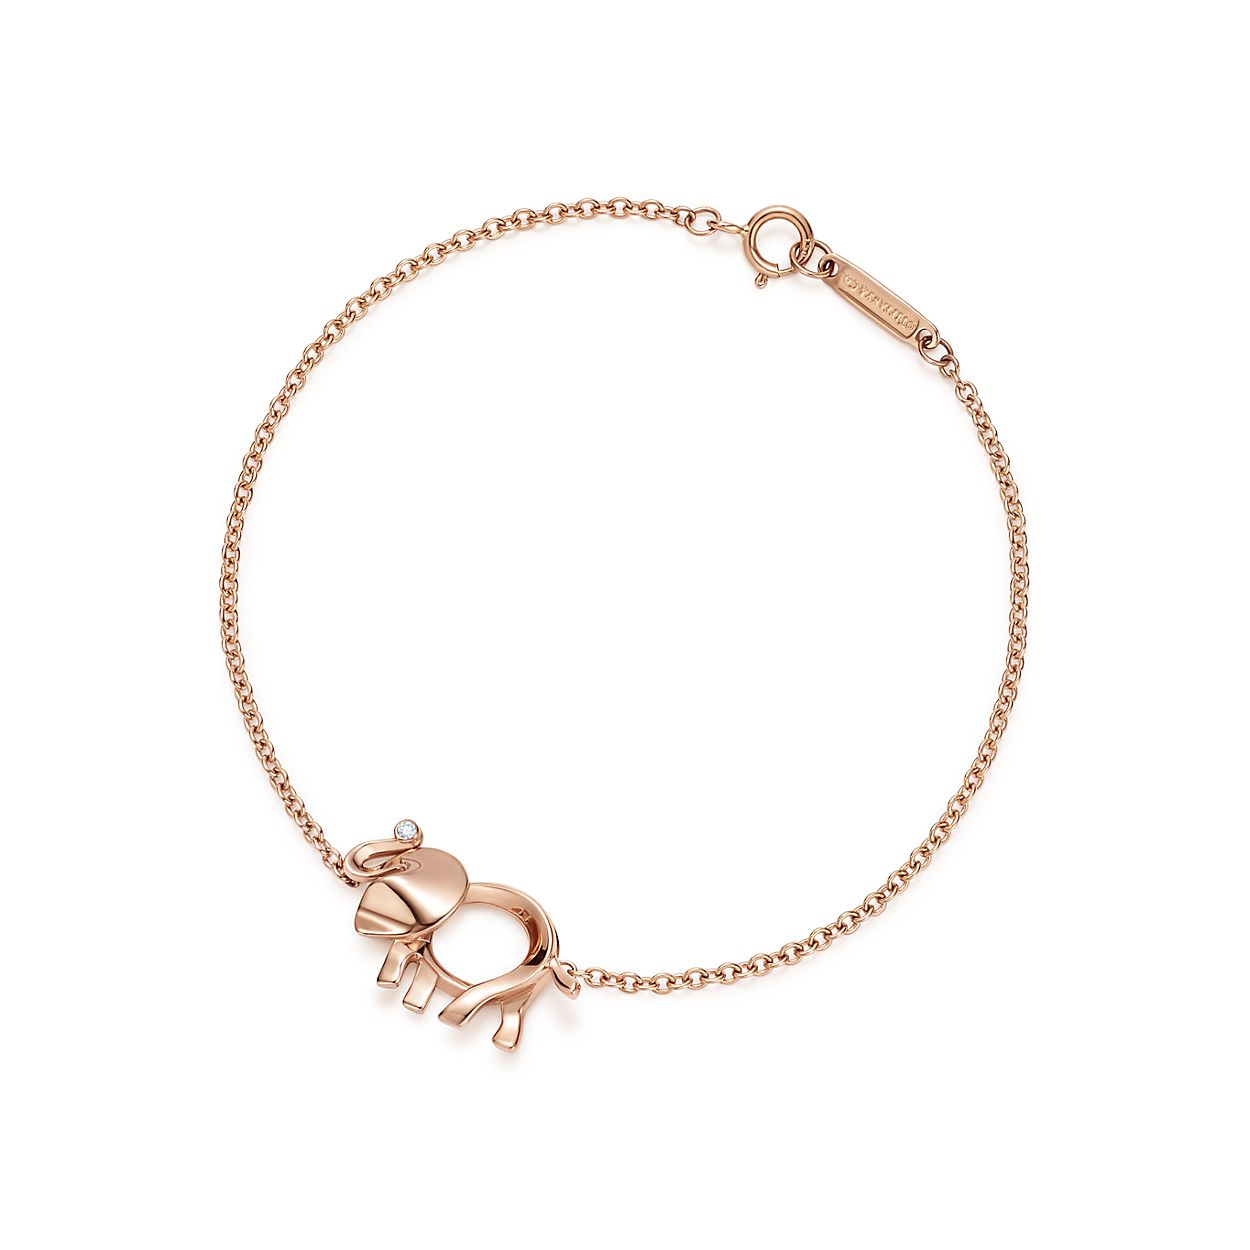 Tiffany Save the Wild elephant charm bracelet in 18k rose gold with a diamond - Size Medium Tiffany & Co. UNXyvRB